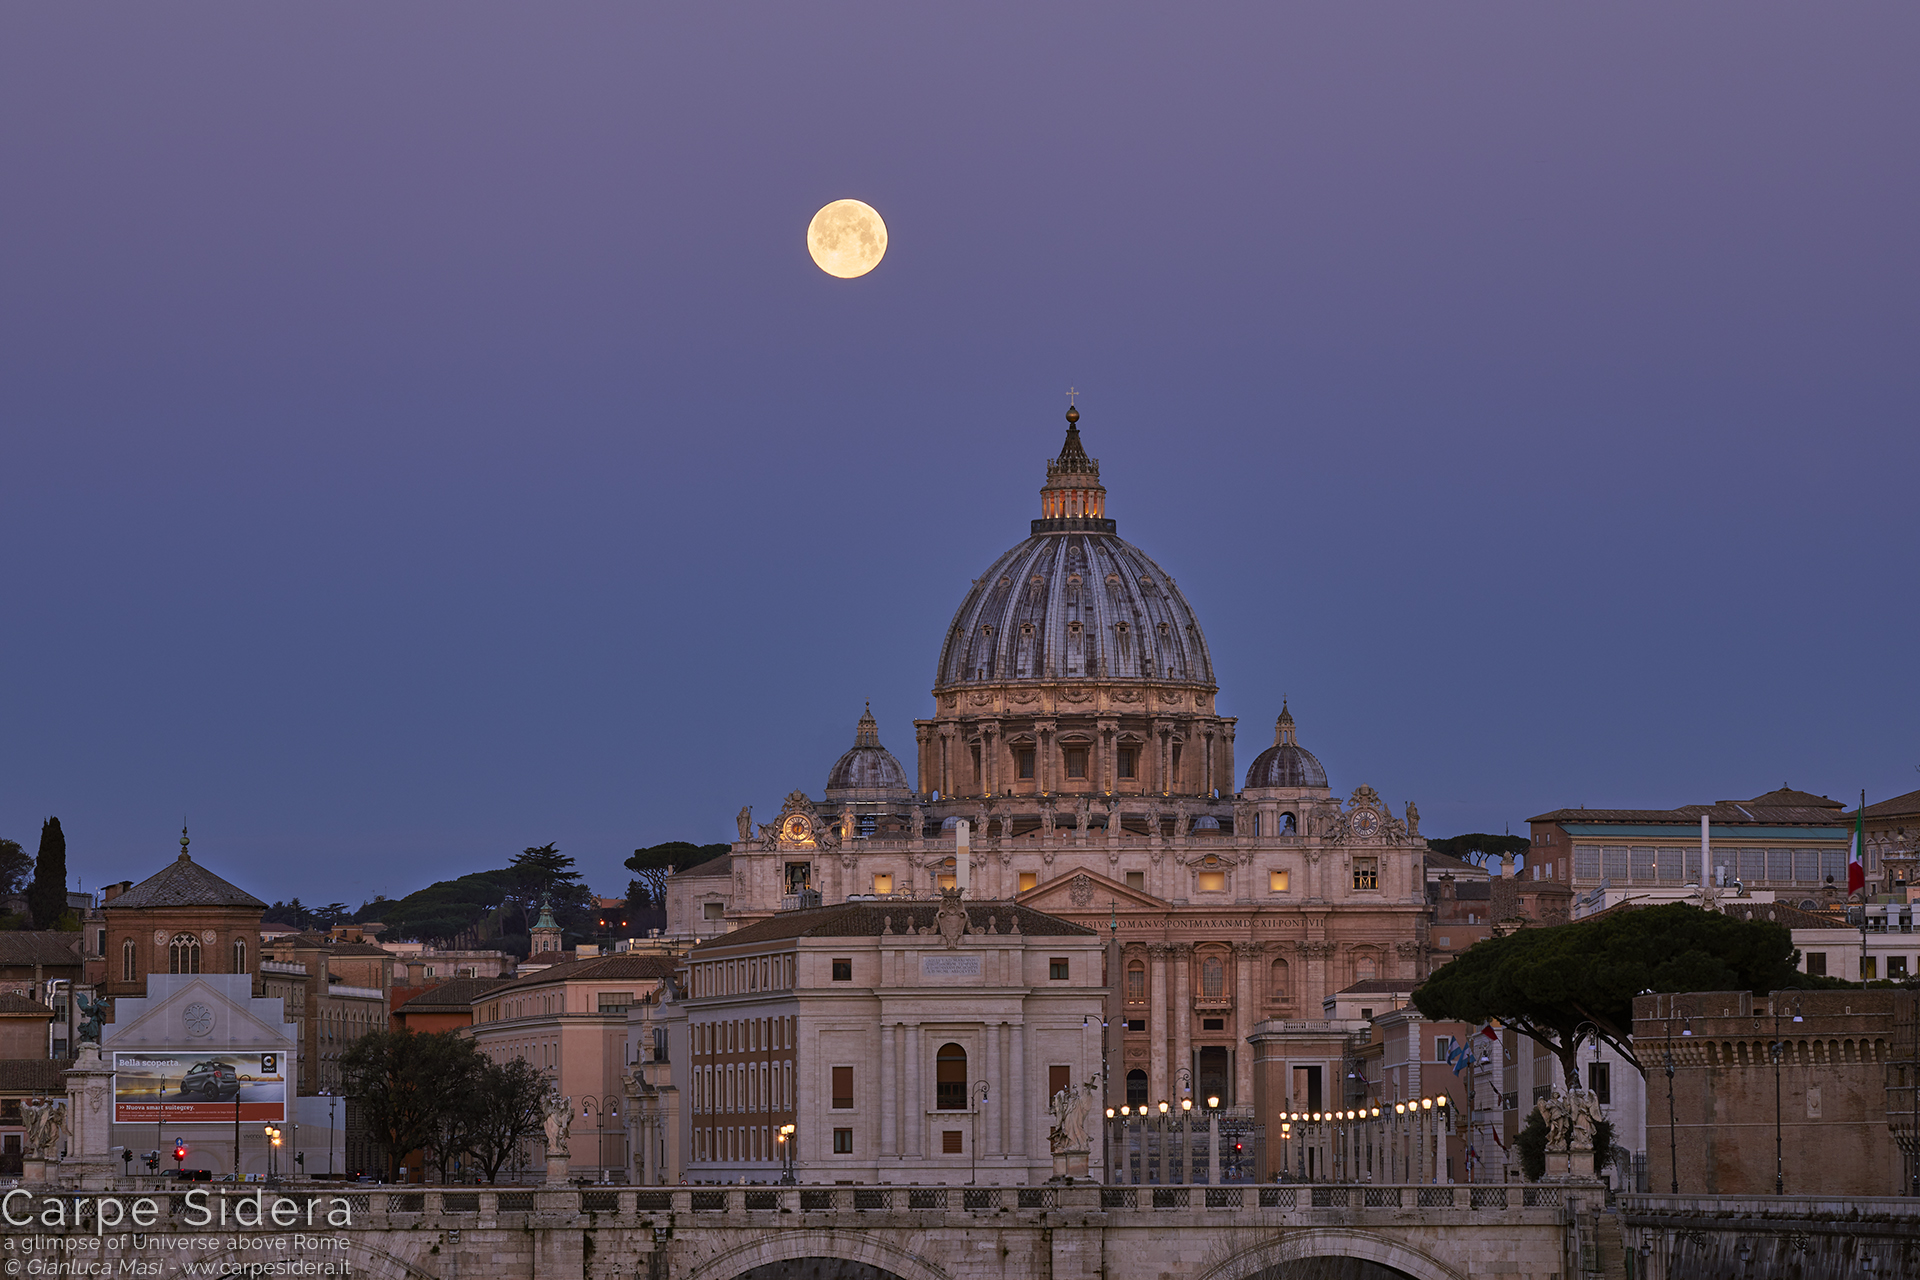 Minute after minute, the Moon gets lower, ready to meet the Dome